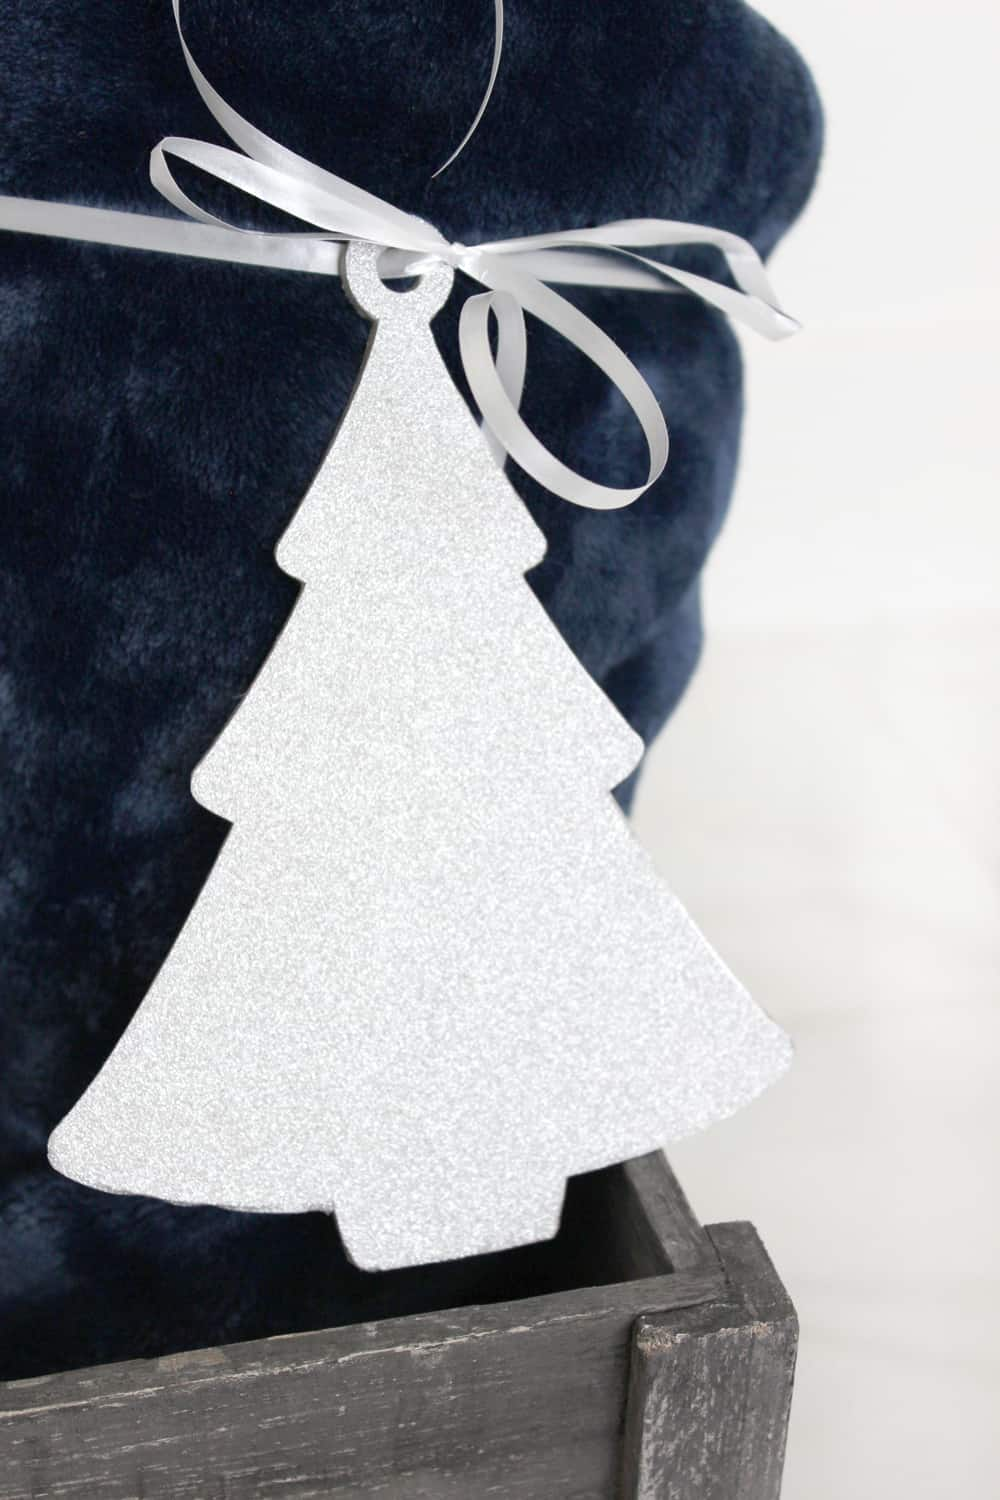 Adorable DIY ornament made from chipboard and glitter vinyl.